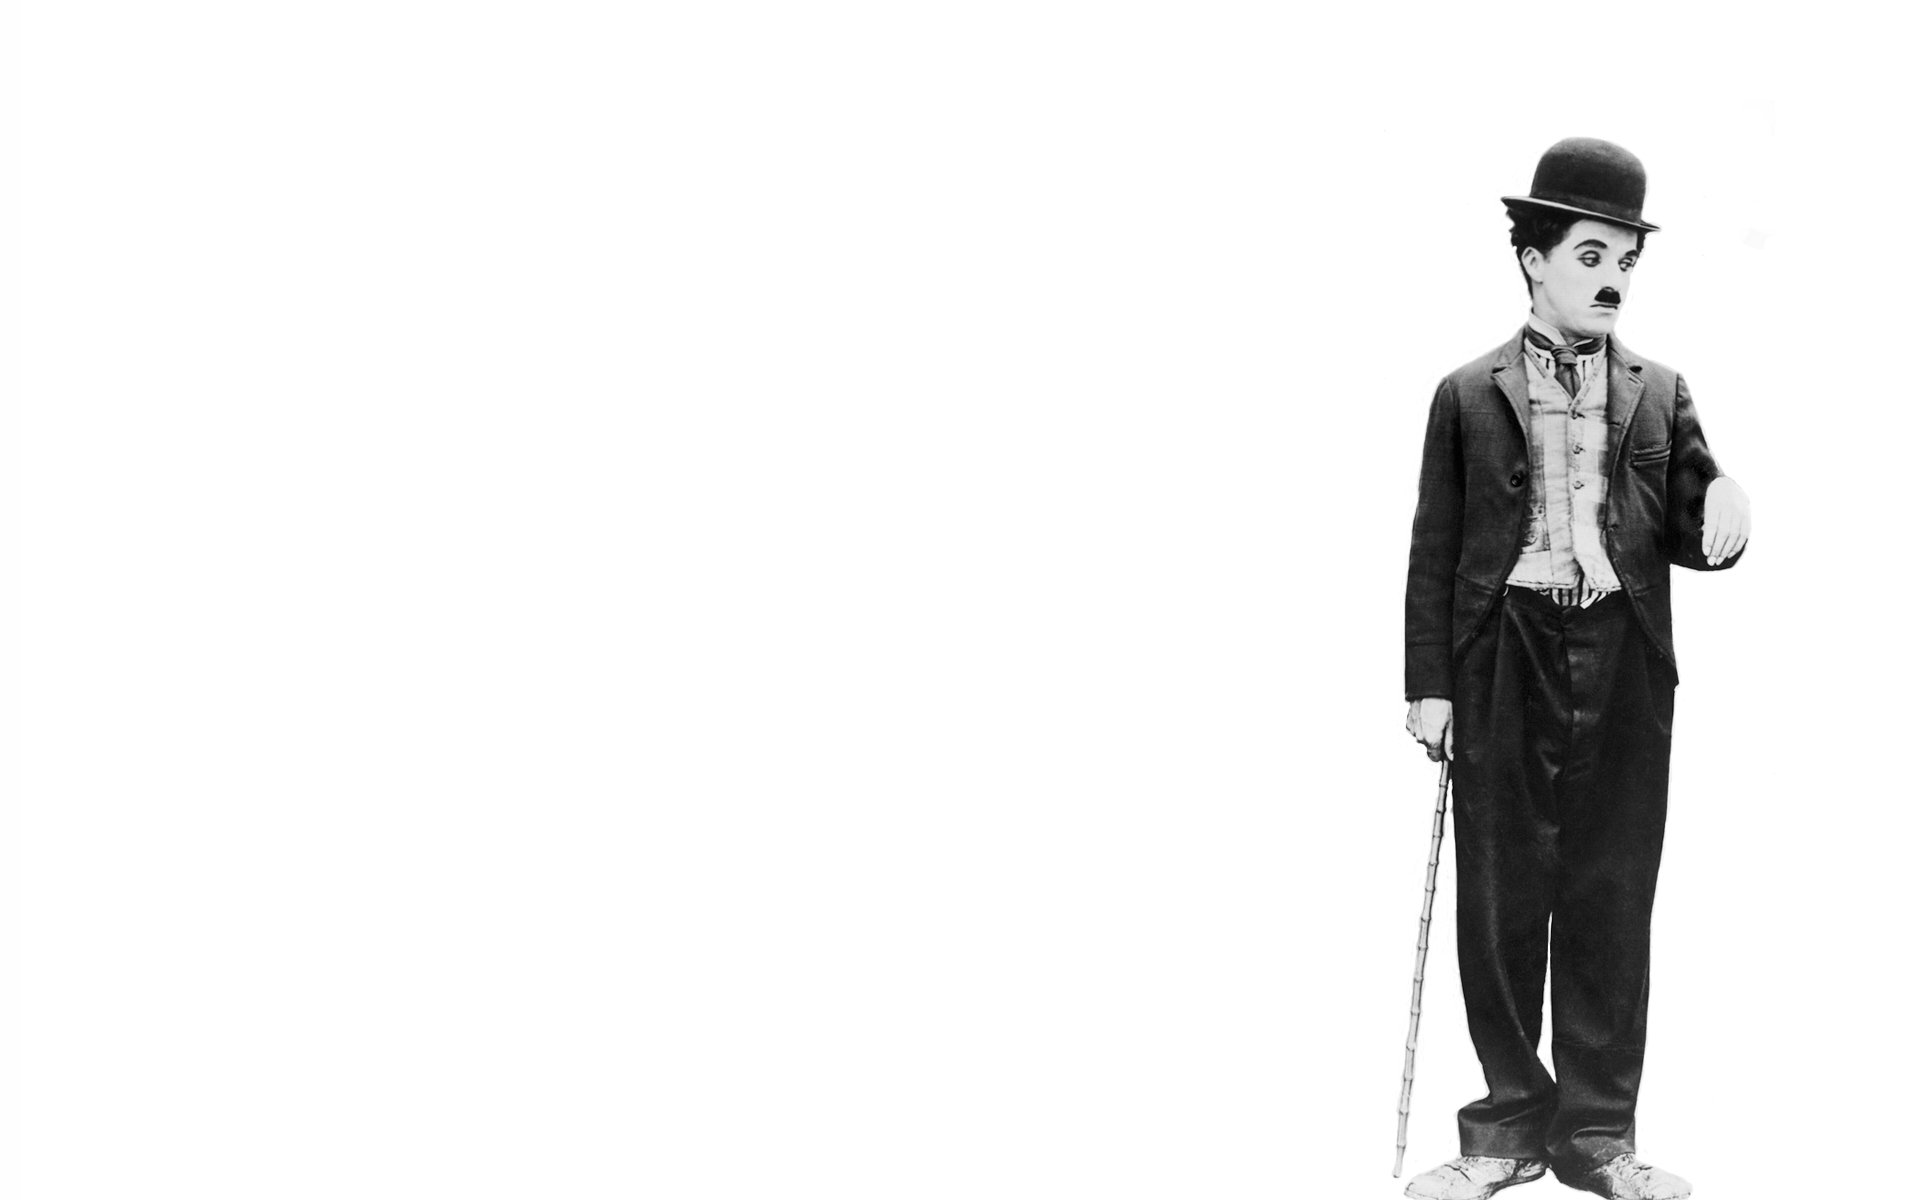 Charles Chaplin HD Wallpapers of High Quality Download 1920x1200